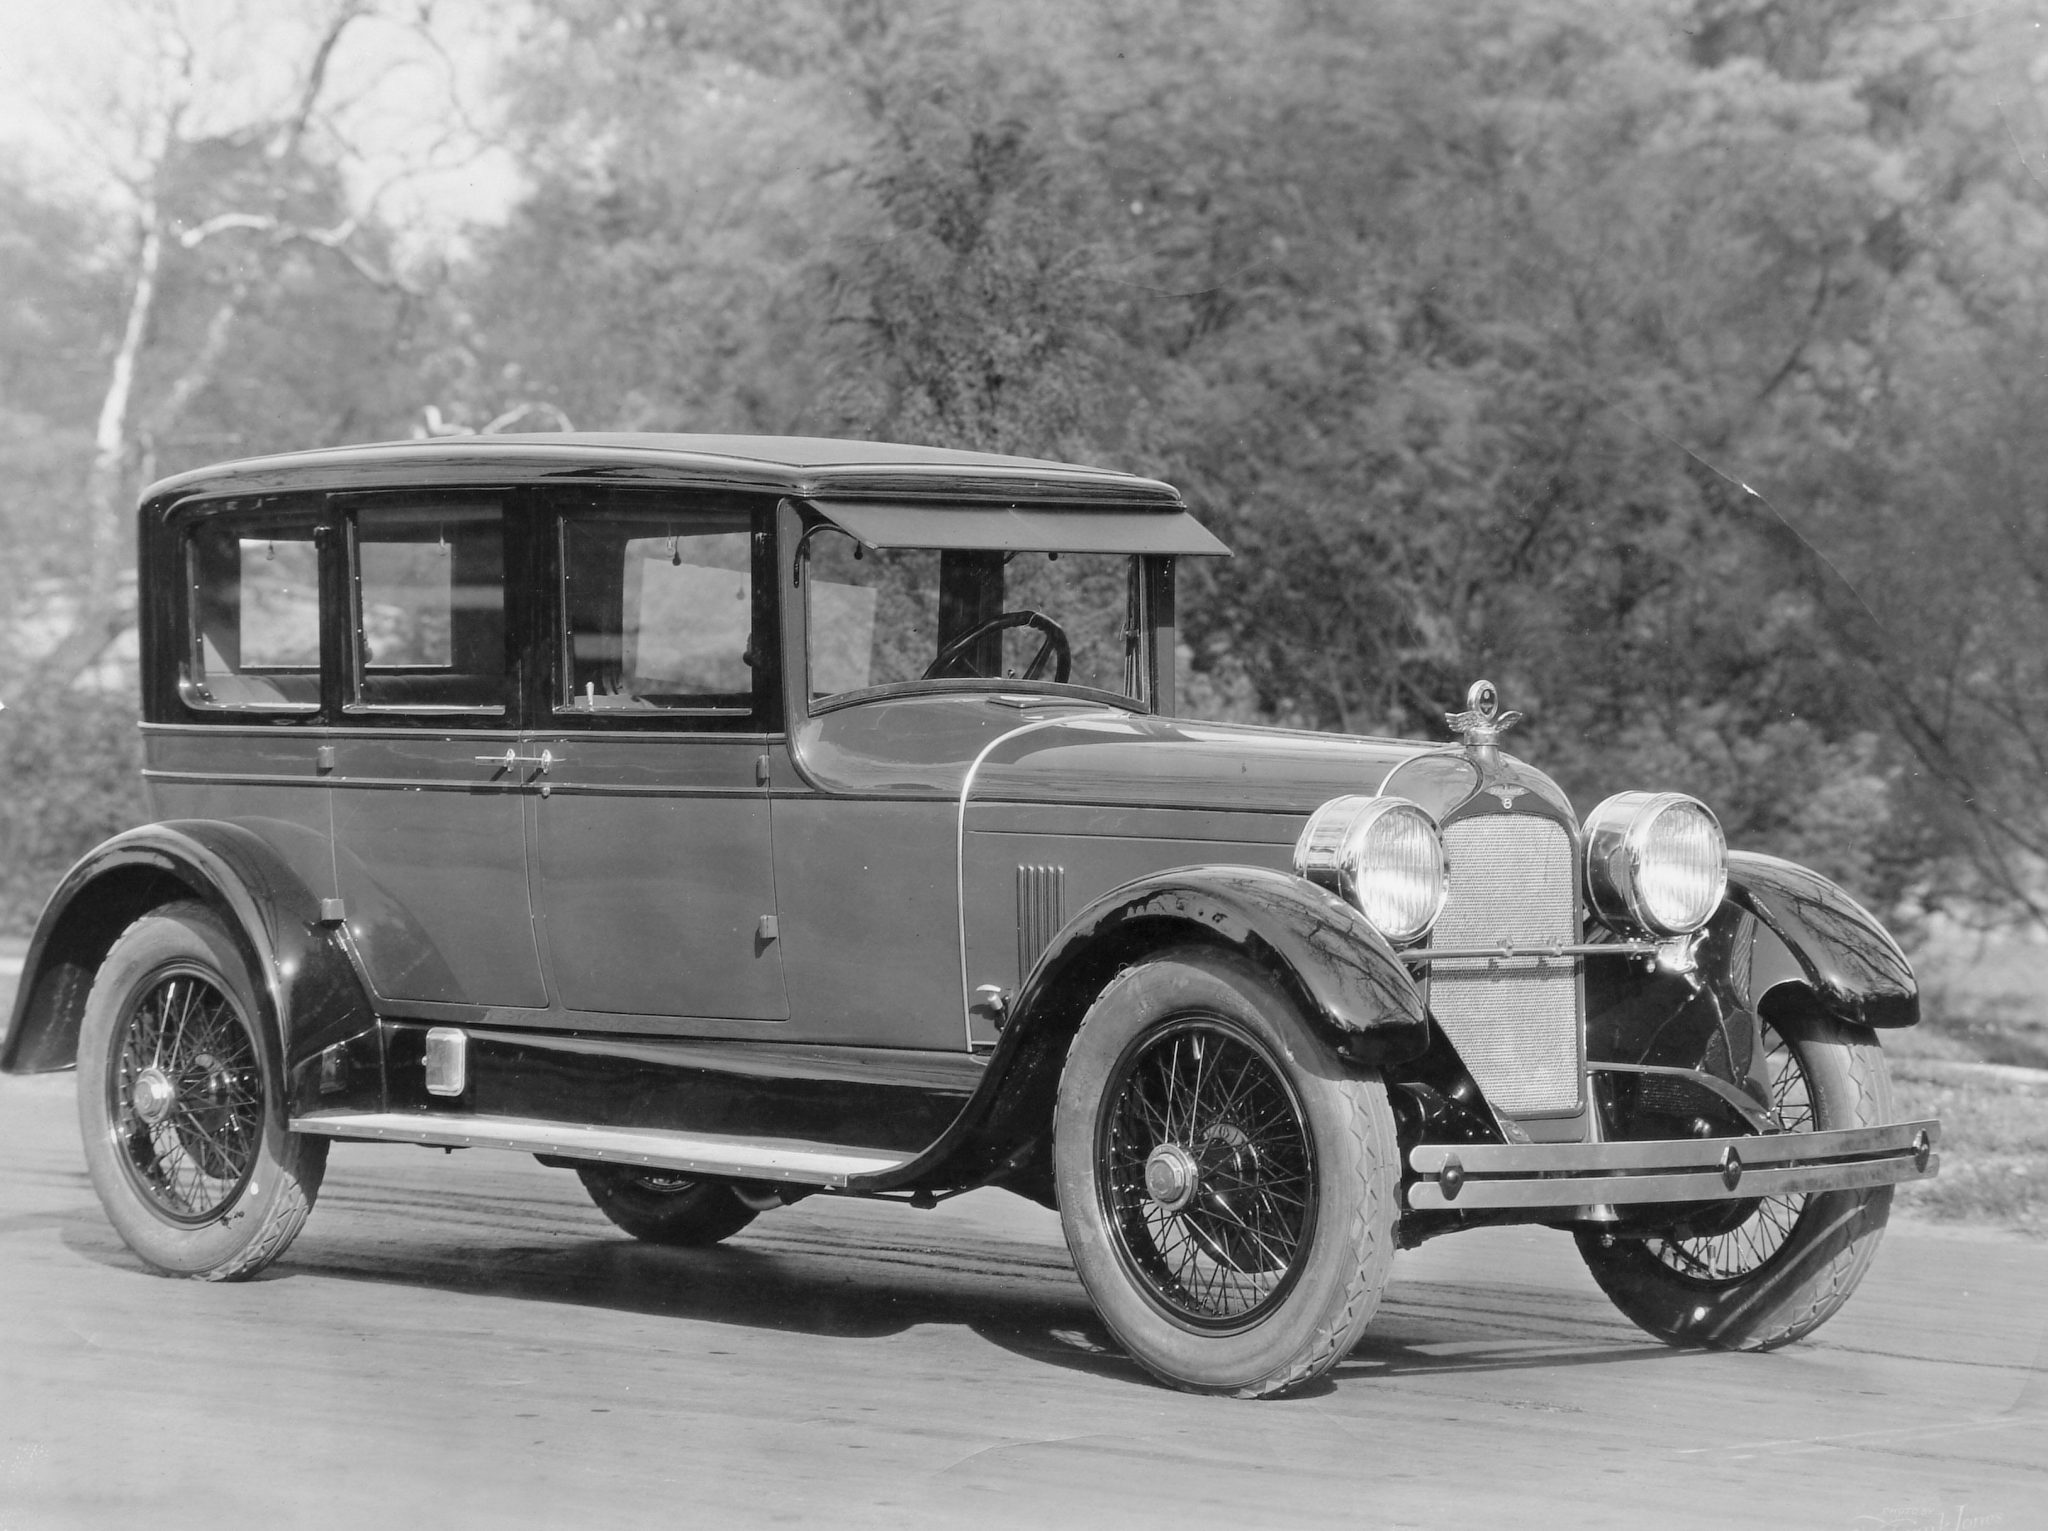 The stately five-passenger, six window sedan was introduced in 1926 at a price of $7,700. Coachwork was produced by Millspaugh & Irish.